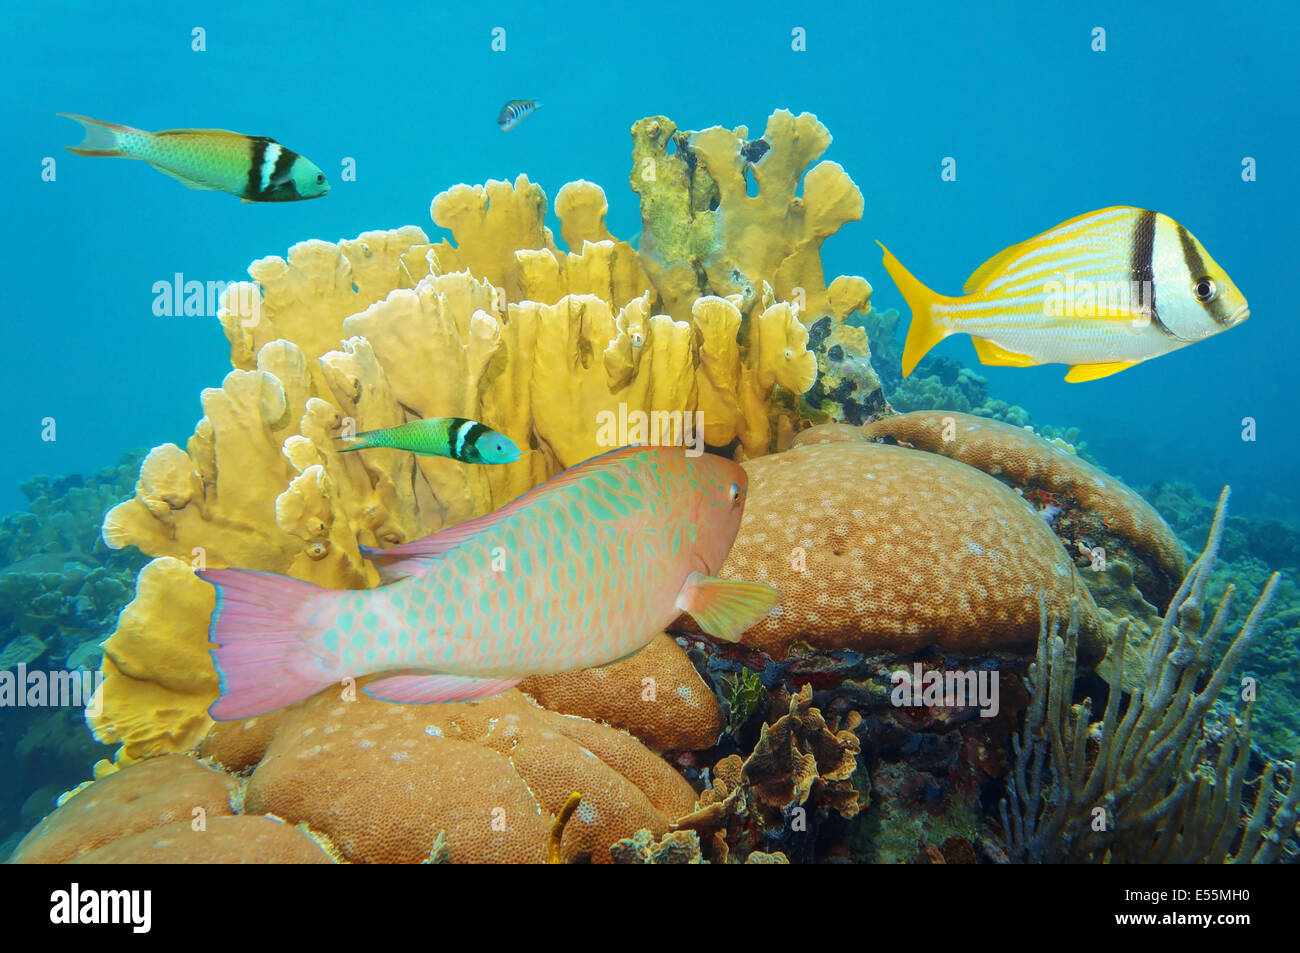 corals under the sea with colorful tropical fish, Caribbean, Mexico - Stock Image